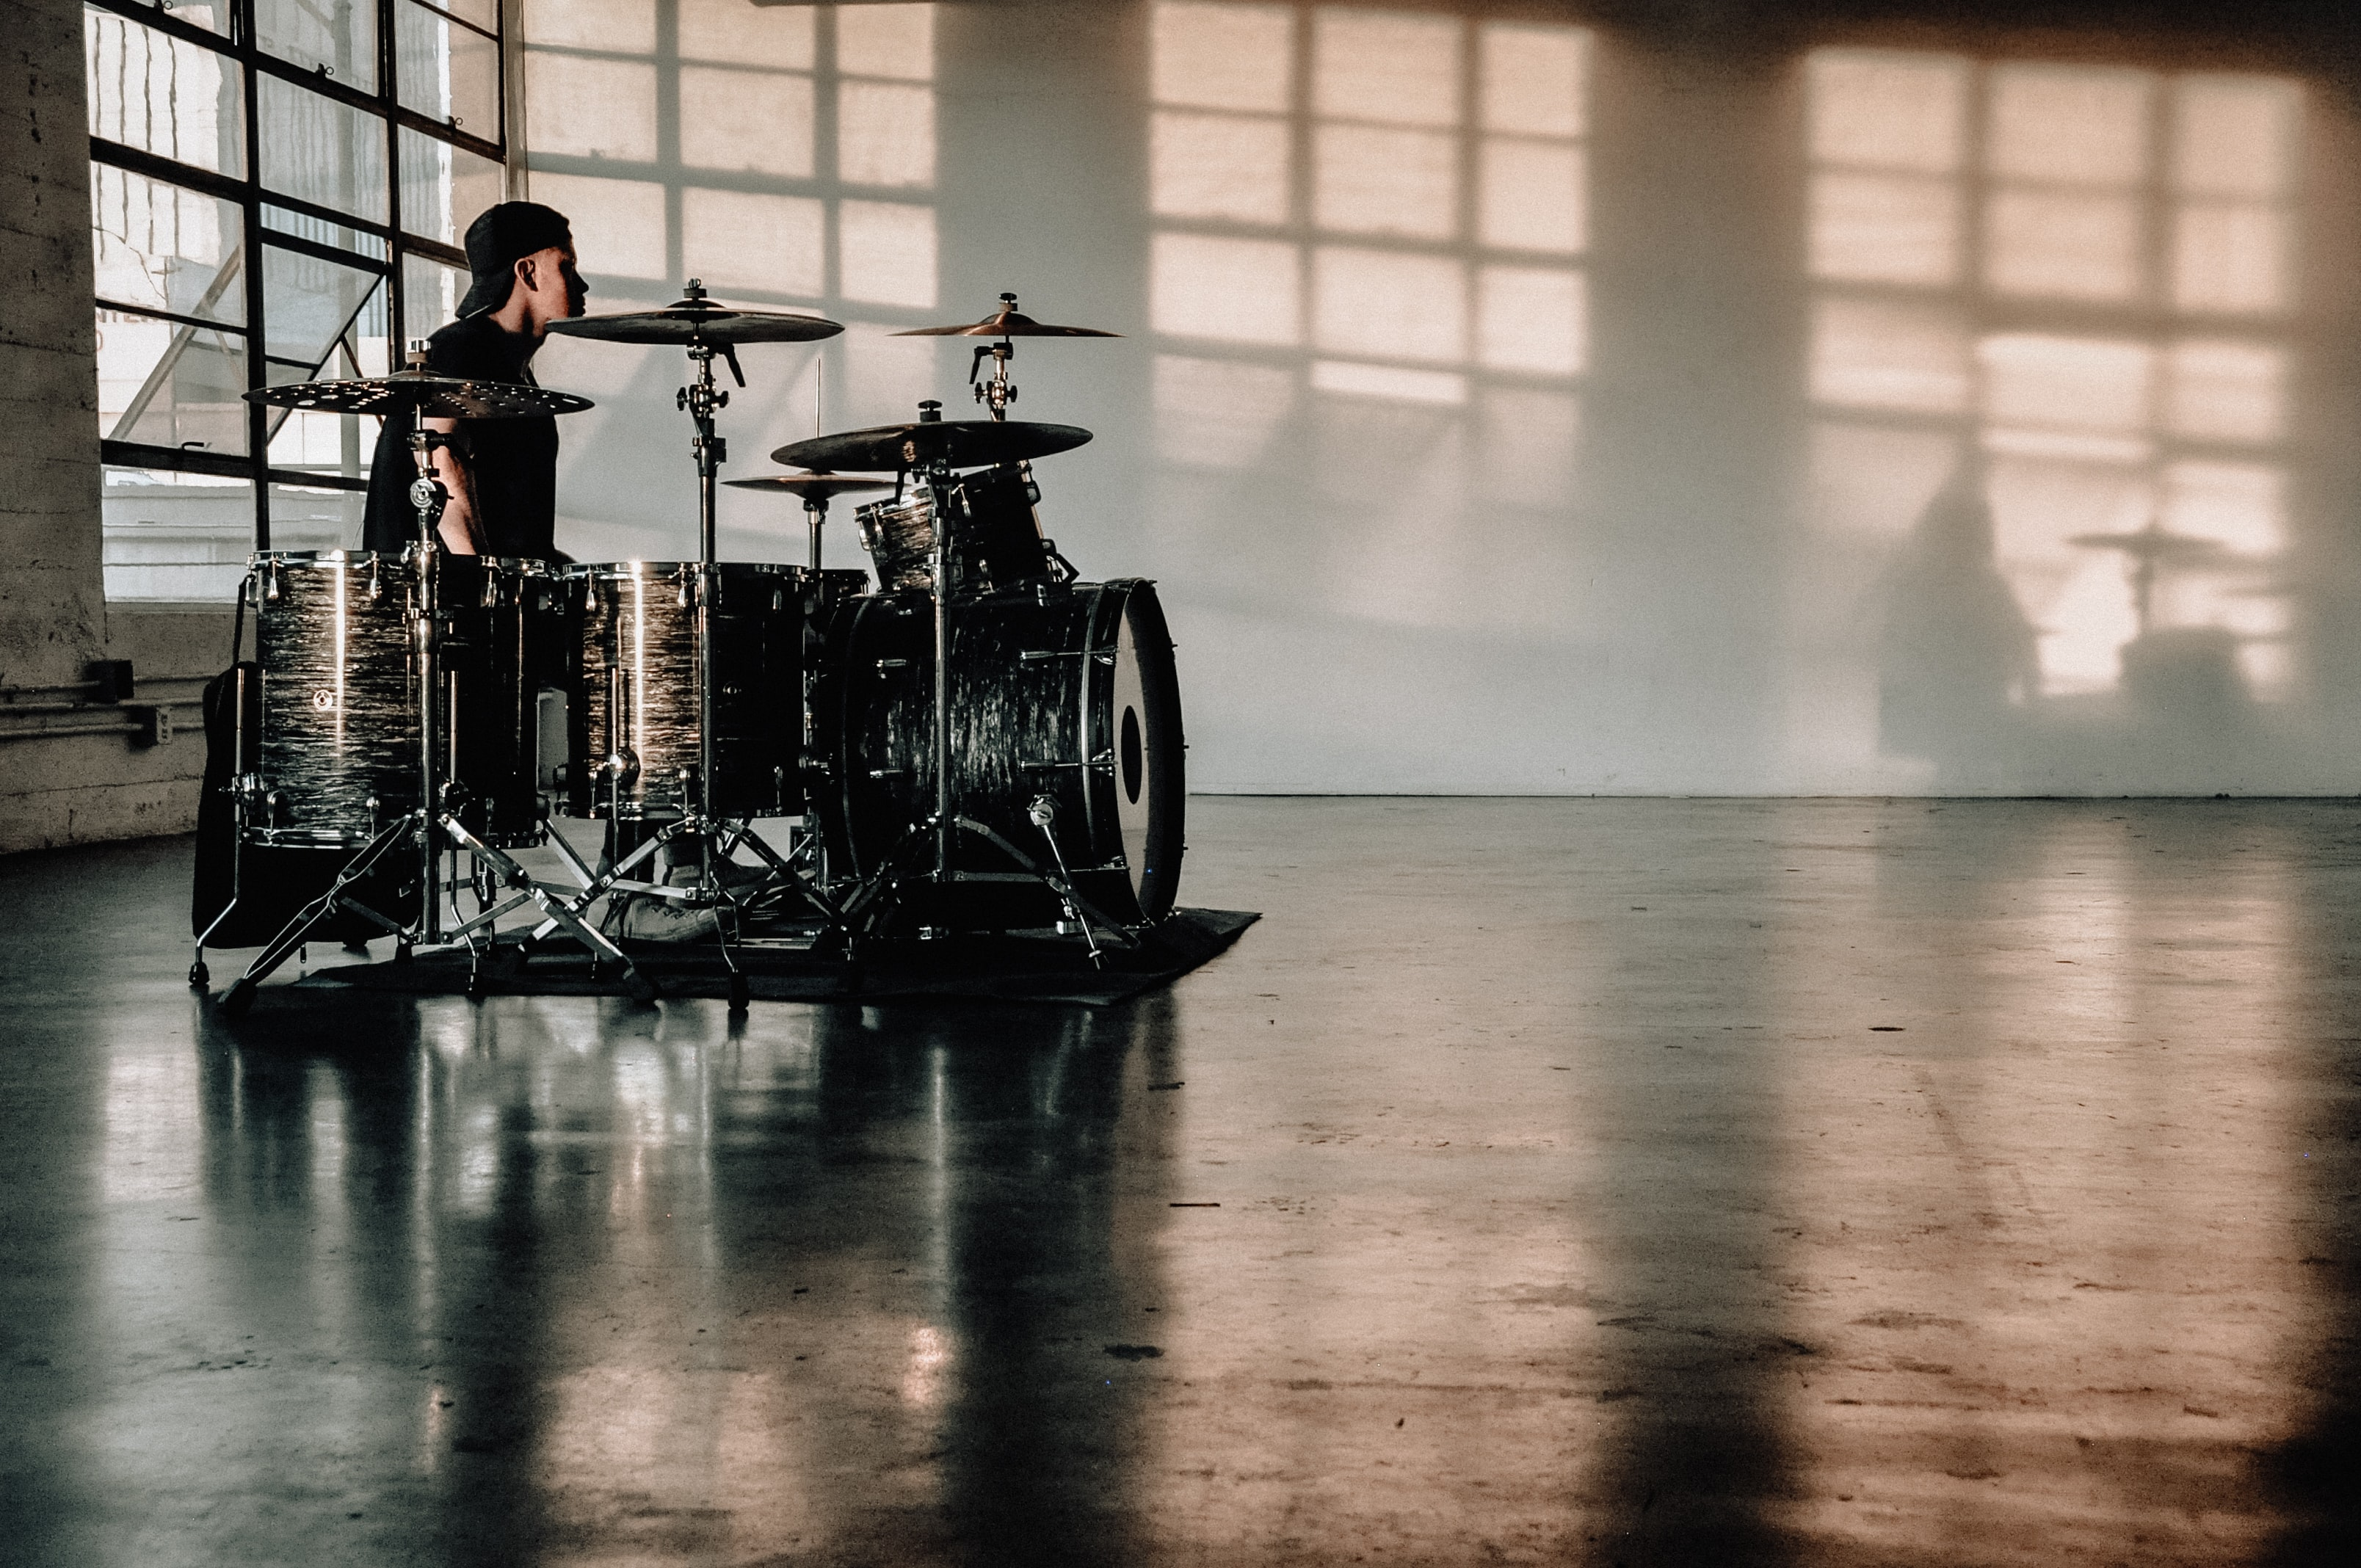 person in front of drumset